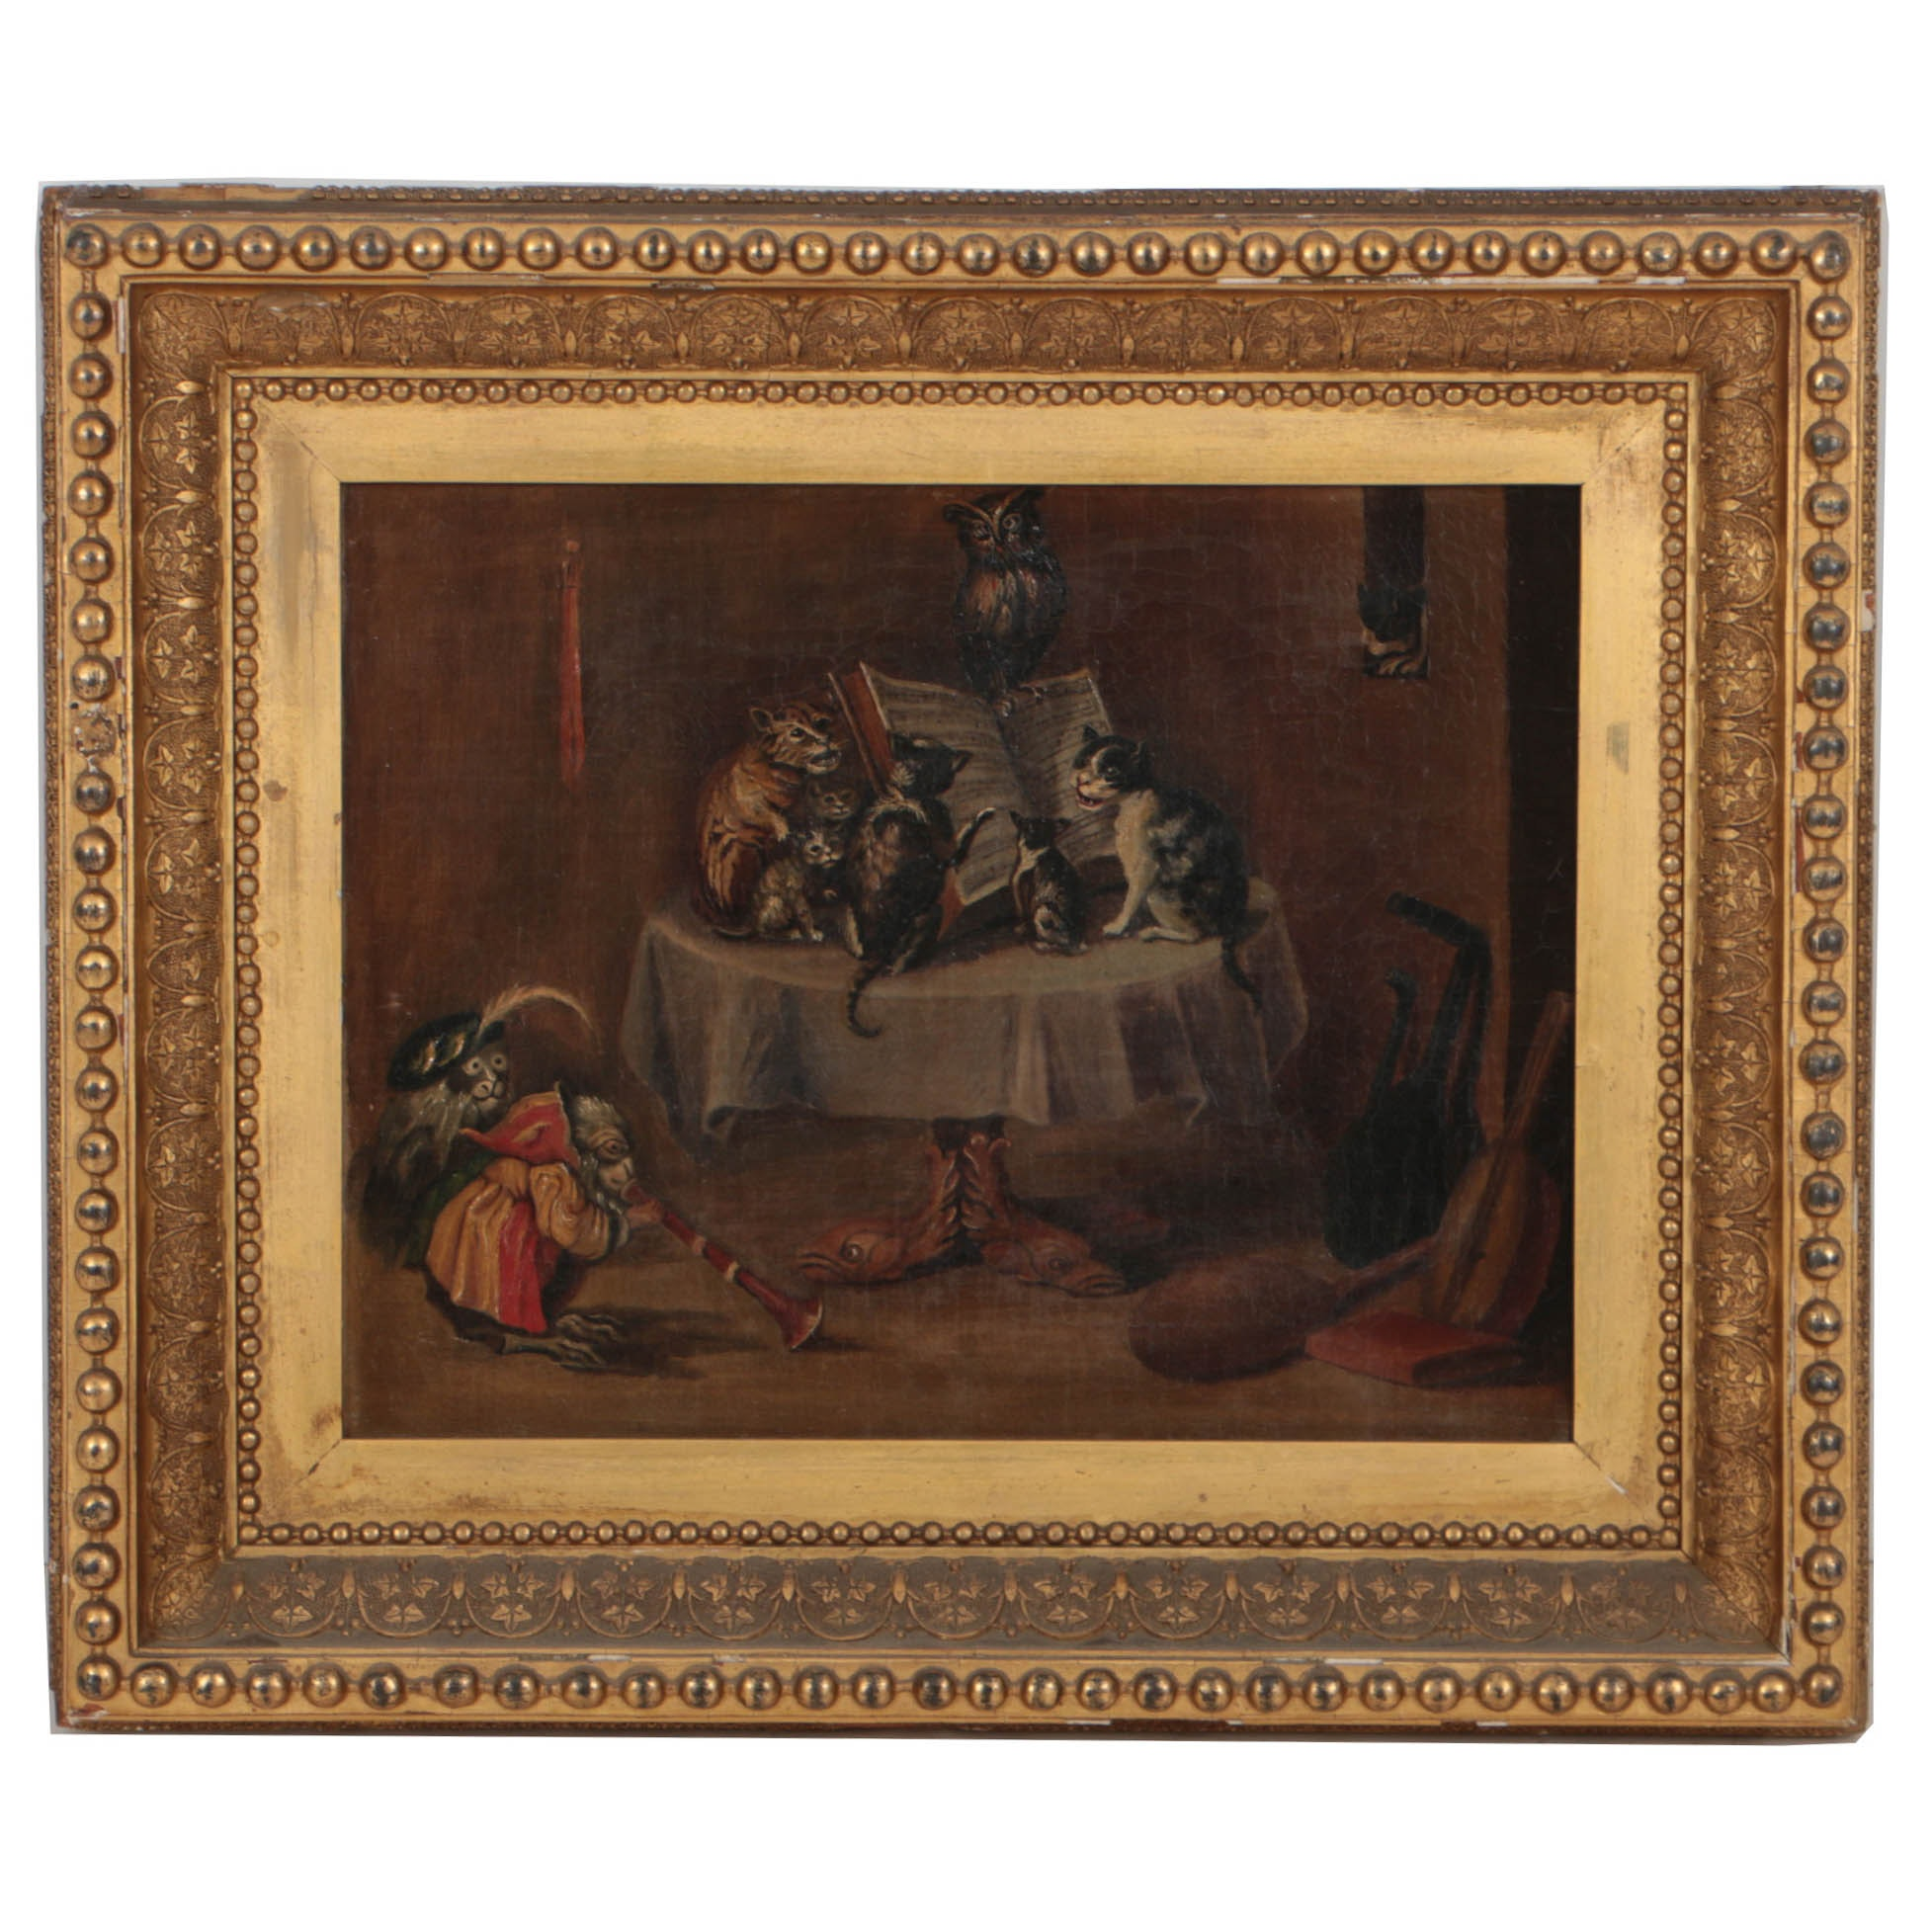 Antique Oil Painting on Canvas of Interior Scene with Animals